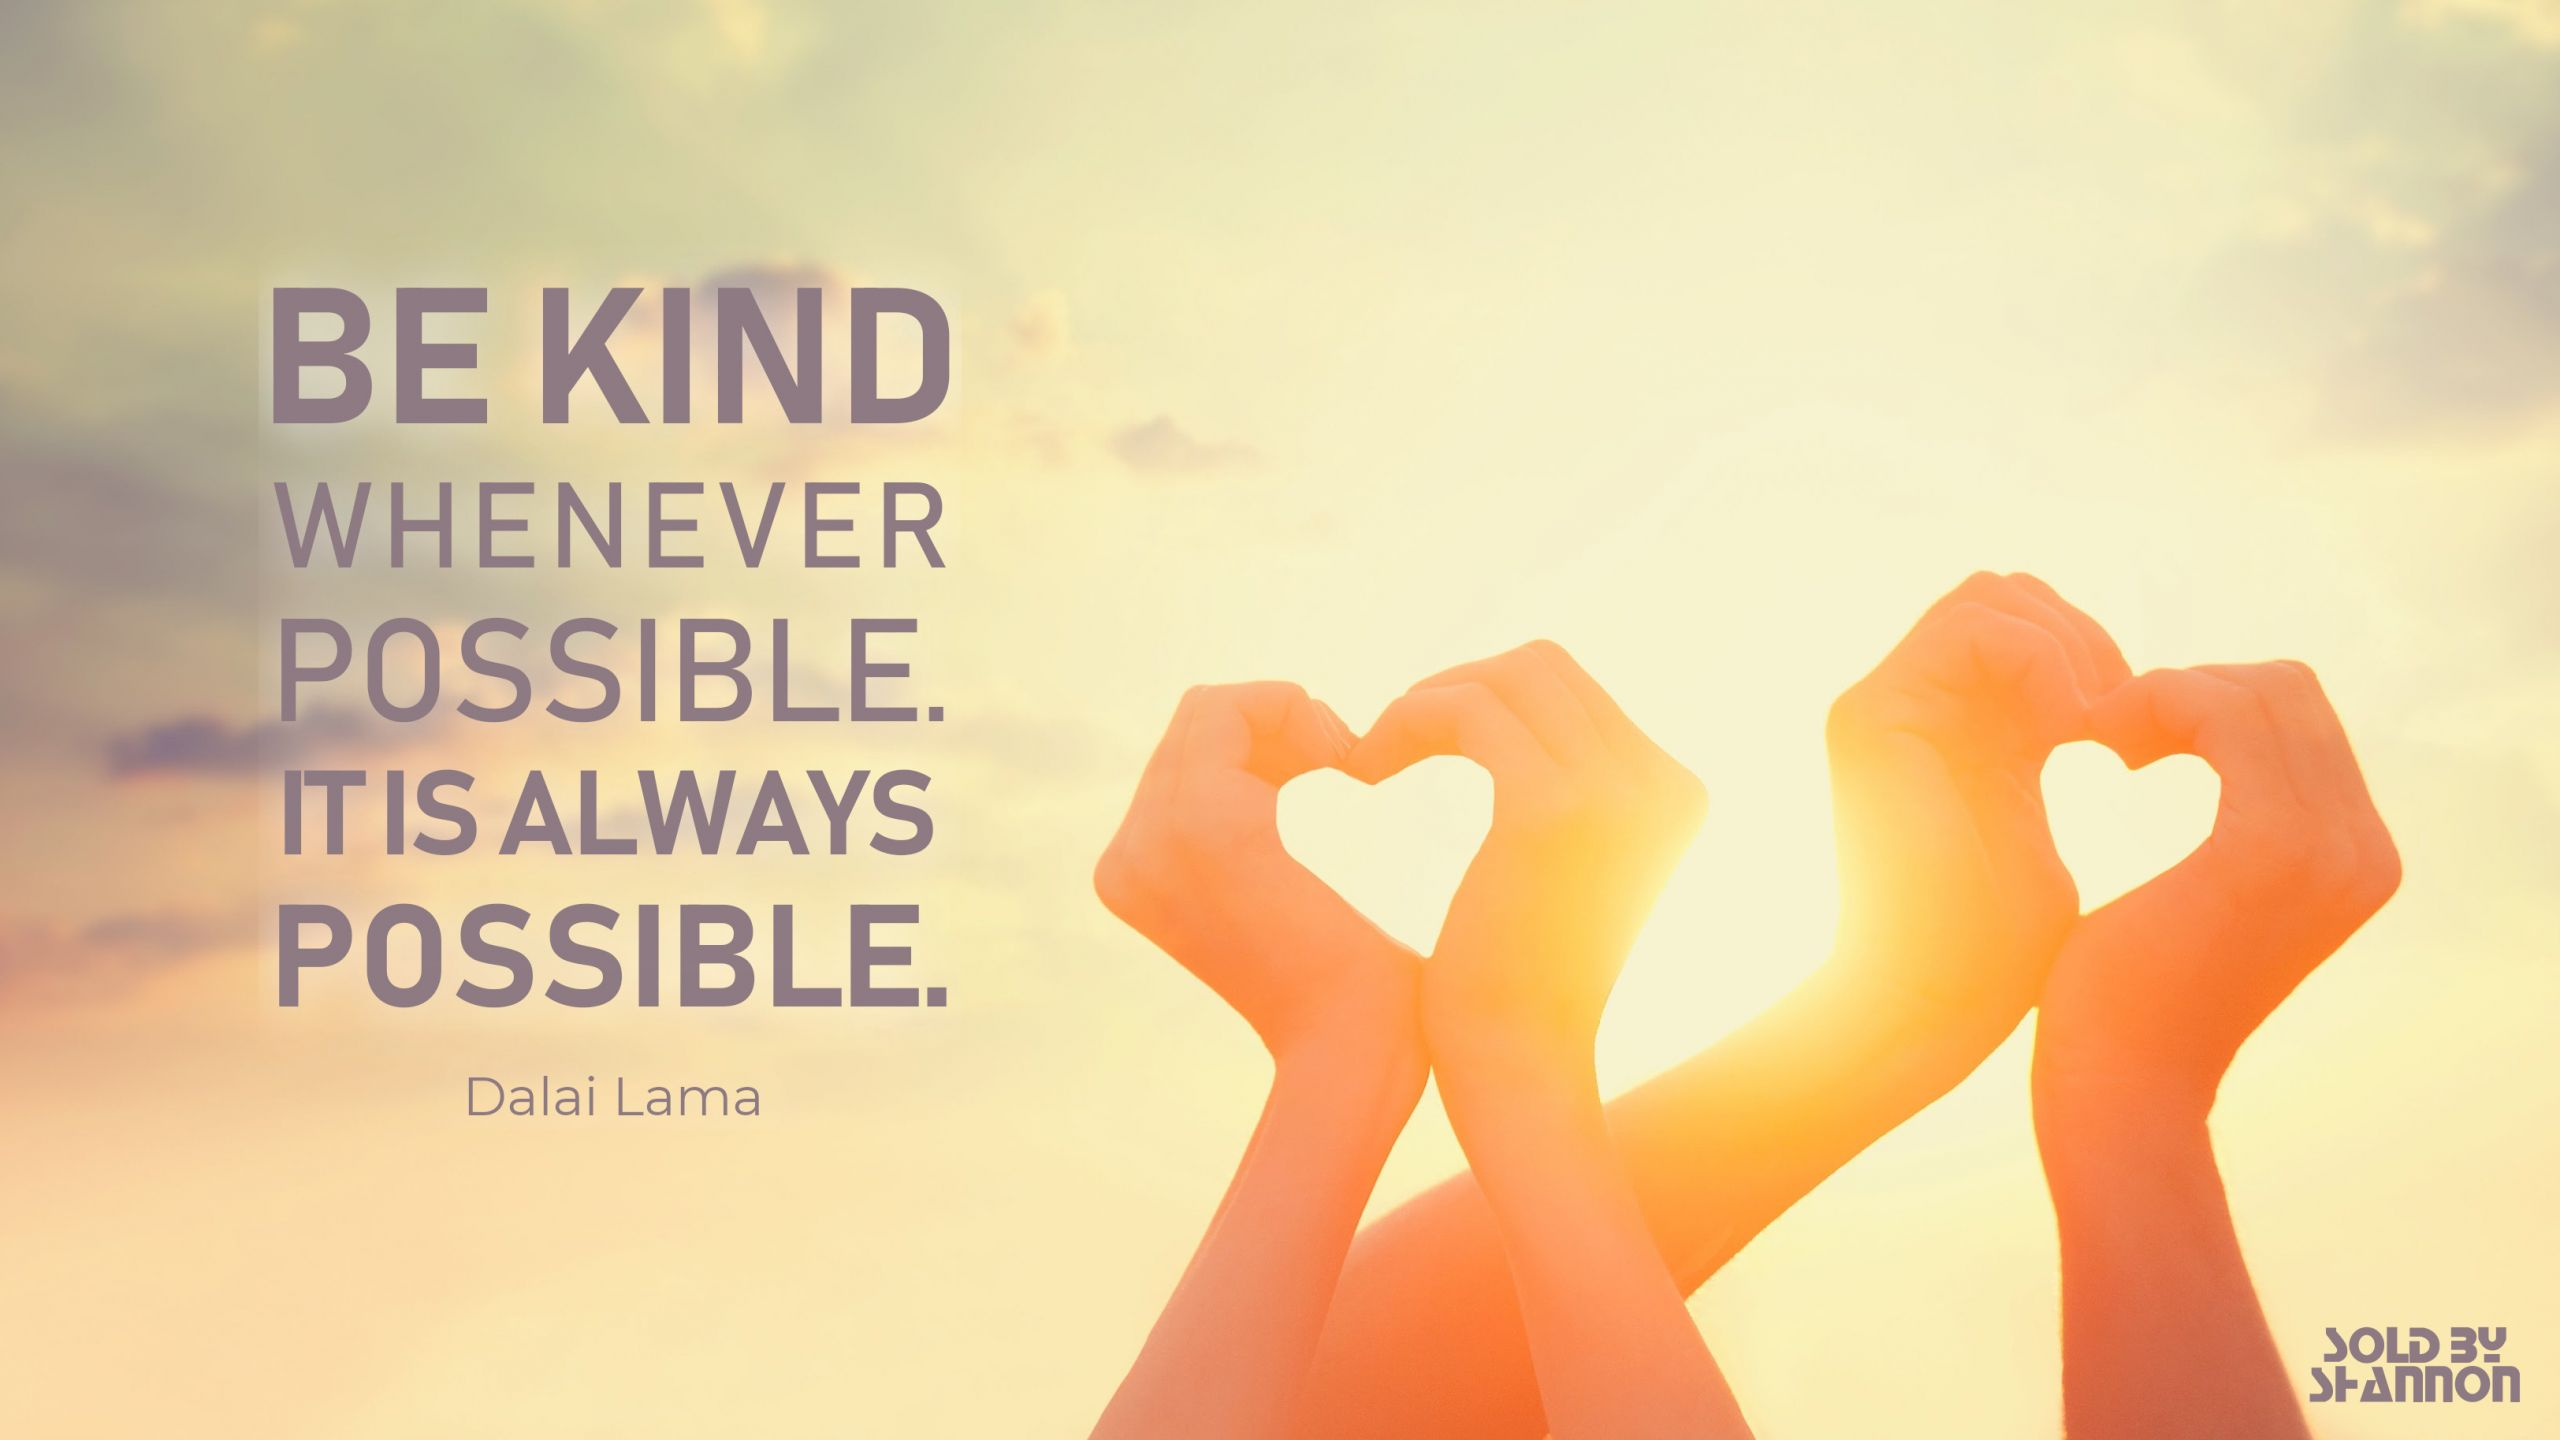 Kindness Quotes Dalai Lama  Kindness is the best policy